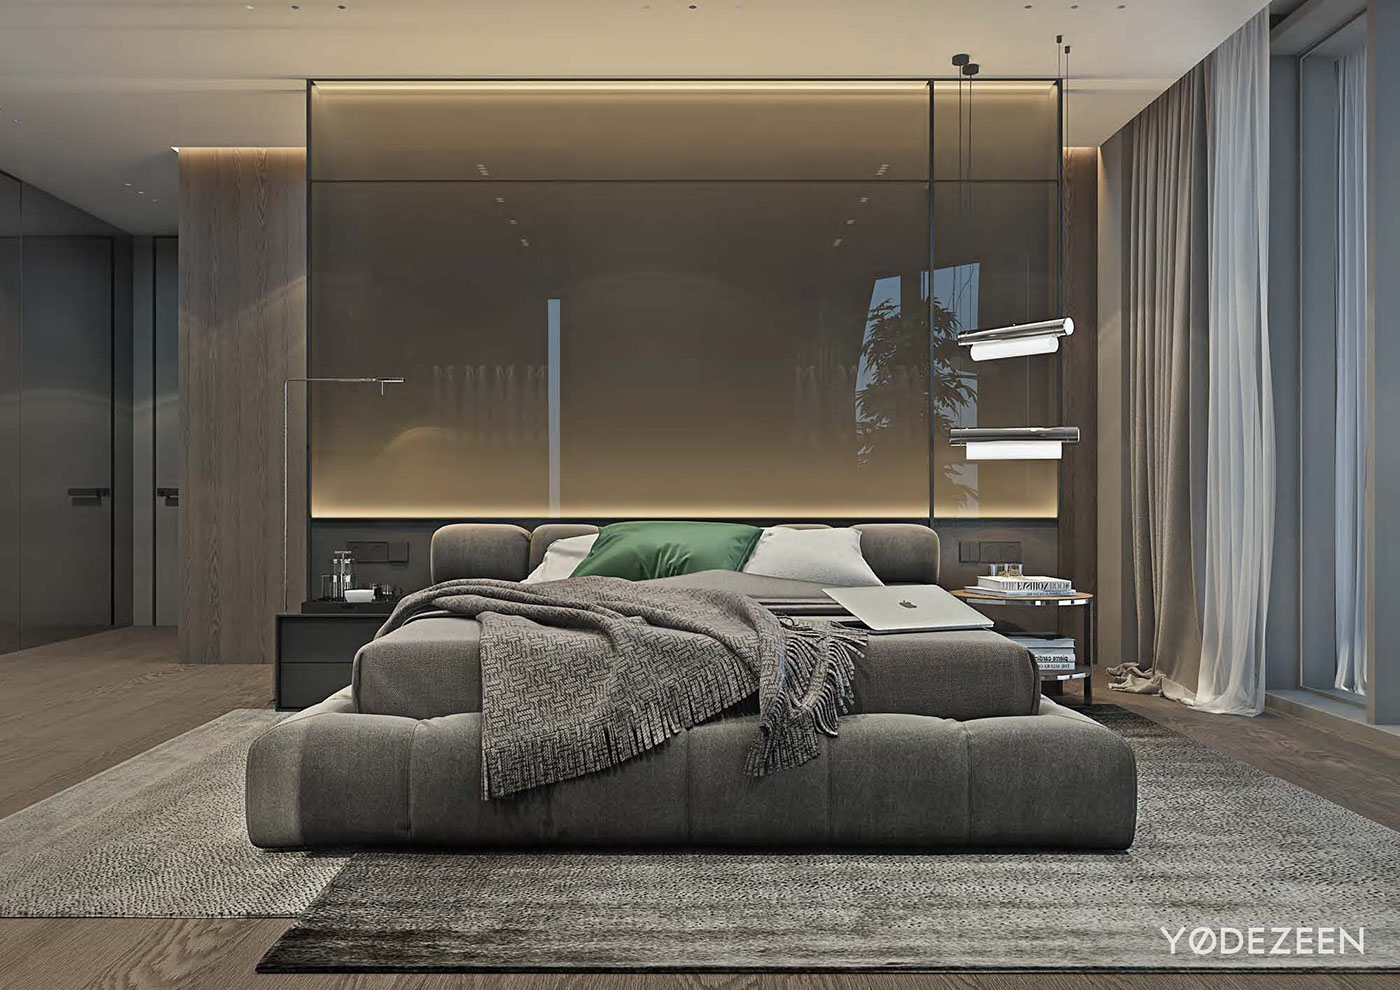 Luxurious Apartment Redefines The Term 'Urban Jungle' images 18